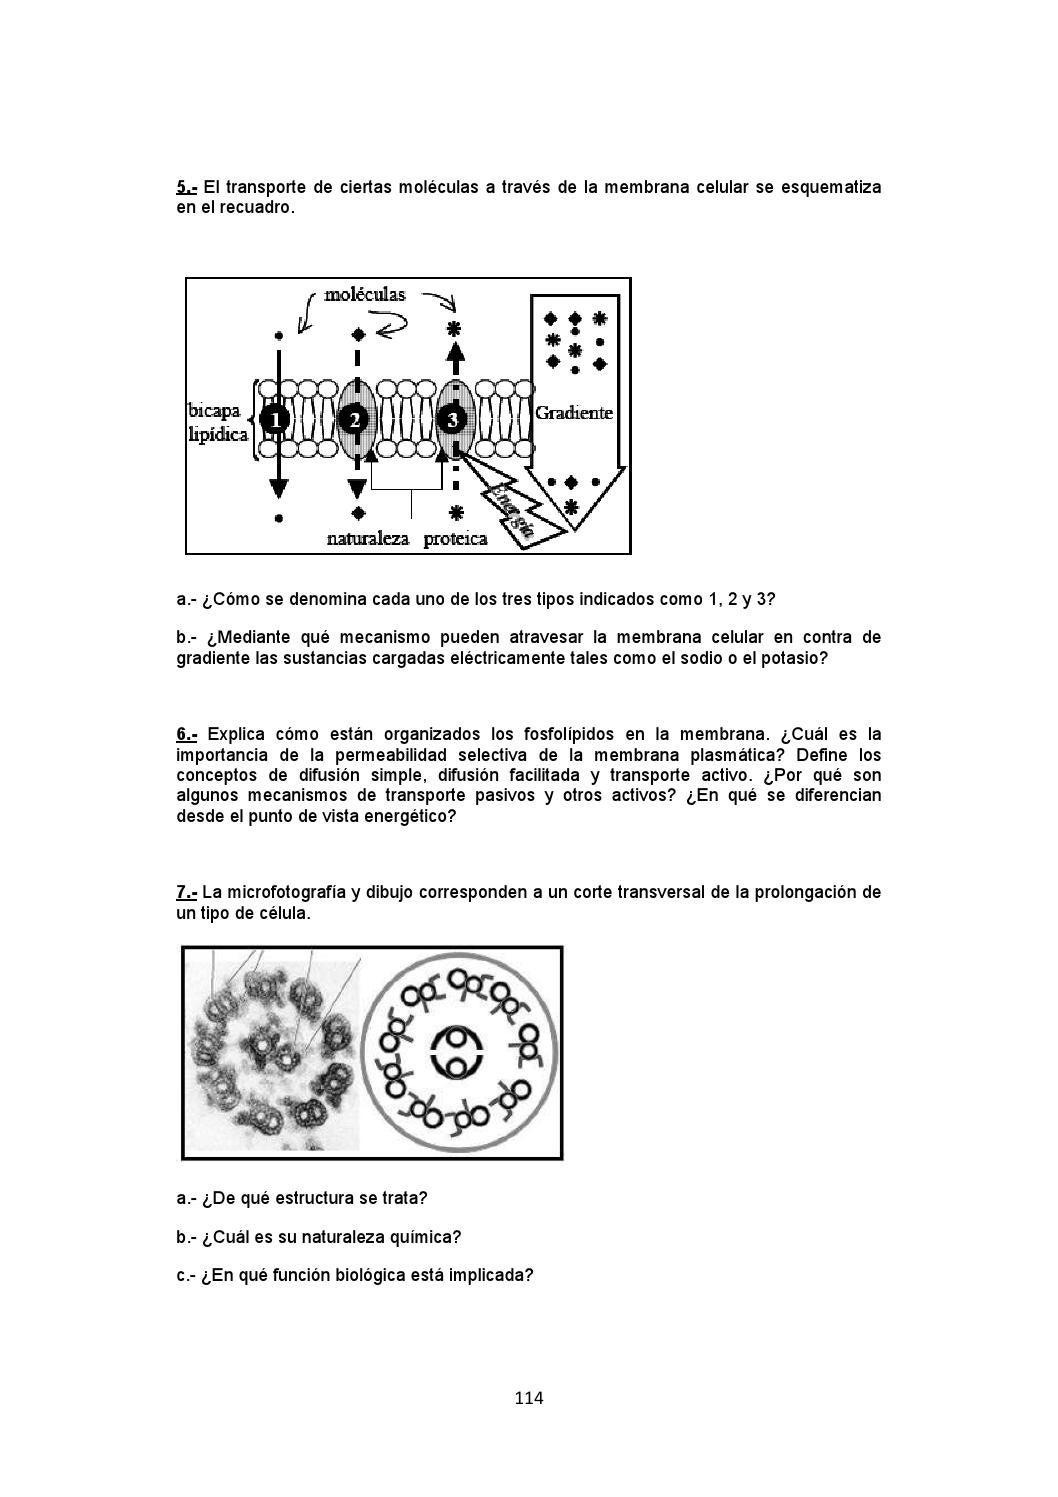 Biología Proyecto Mendel By Carricerocomun Issuu